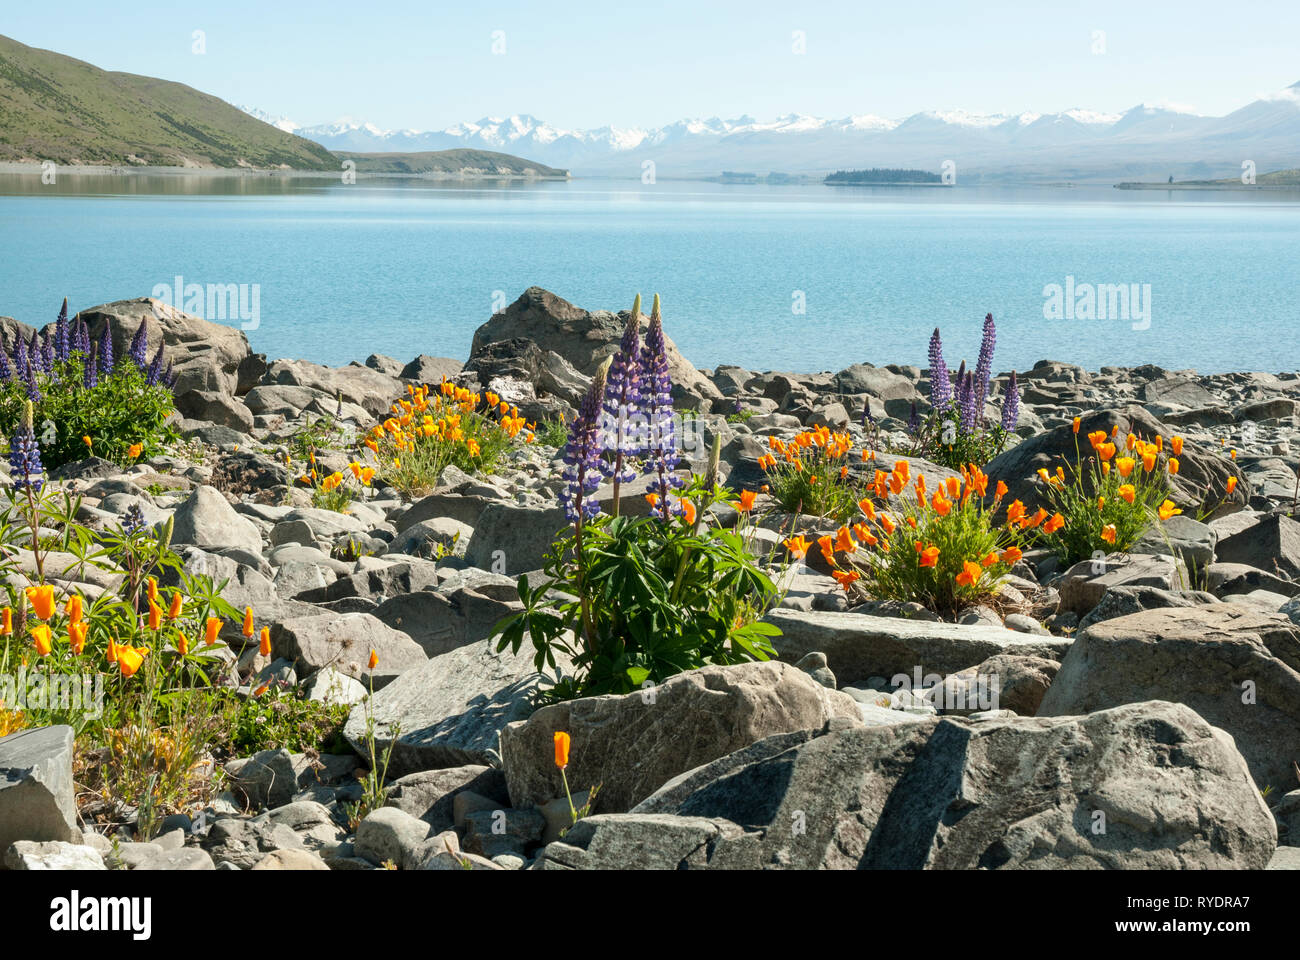 The stunning pale blue Lake Tekapo, New Zealand, with snow capped mountains in the background; colourful lupins and Californian poppies in foreground. Stock Photo